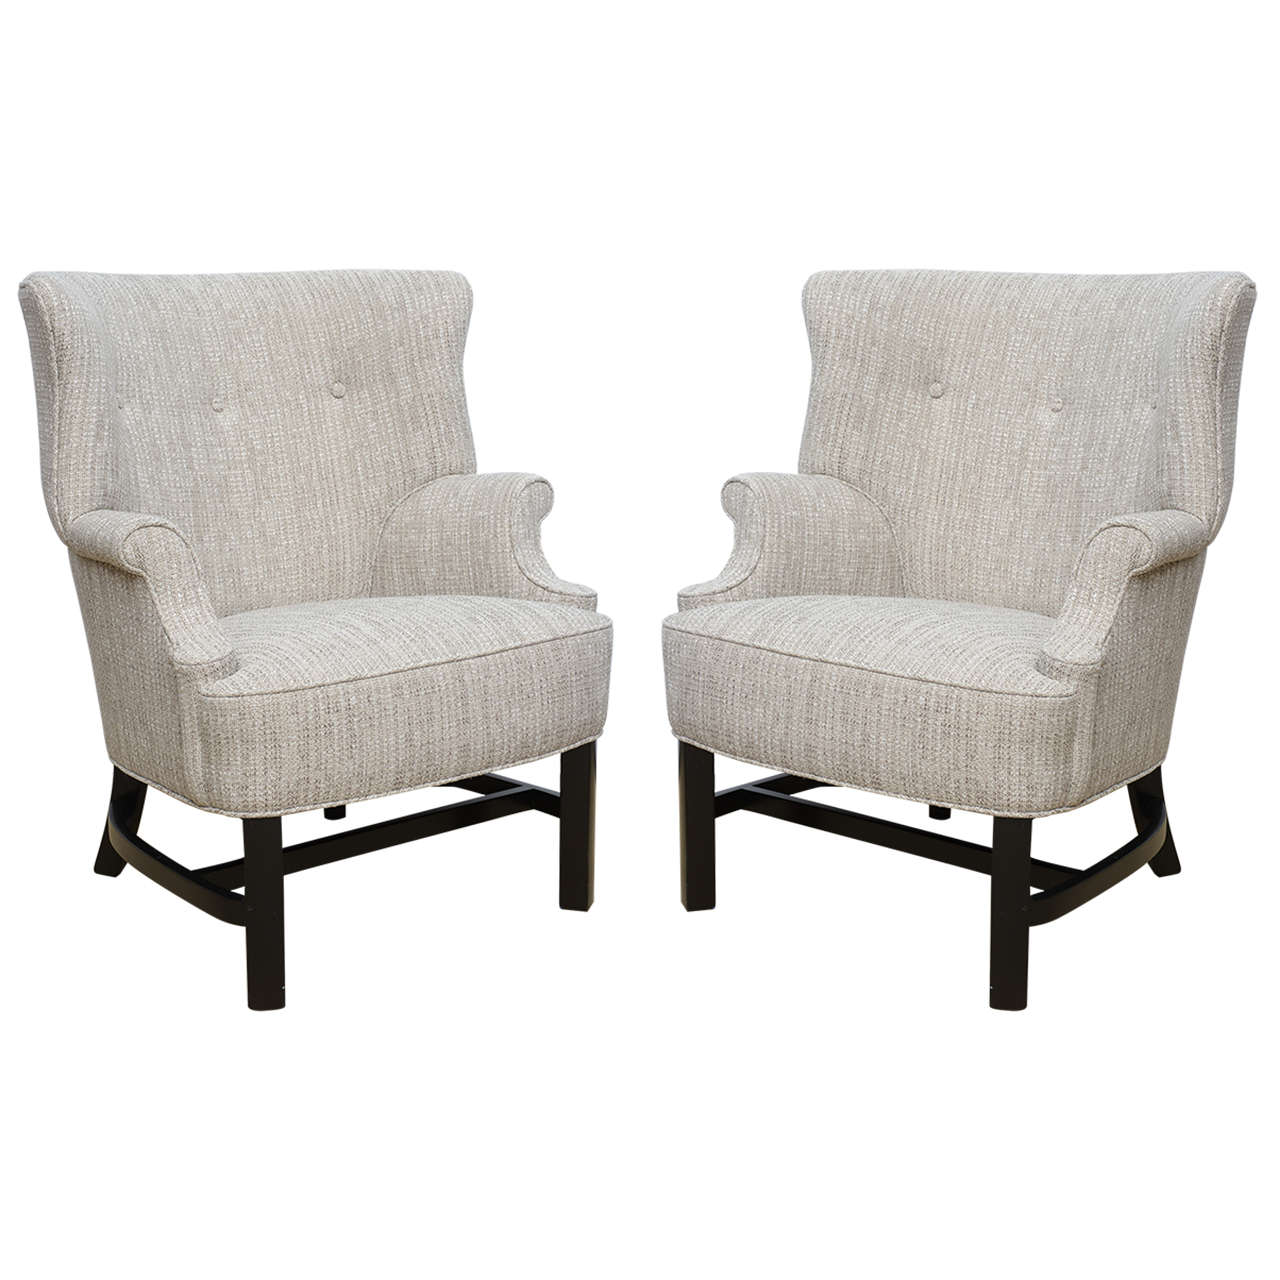 Danish modern wingback chair - Pair Of Mid Century Modern Petite Scale 1940s Dunbar Attributed Wingback Chairs 1